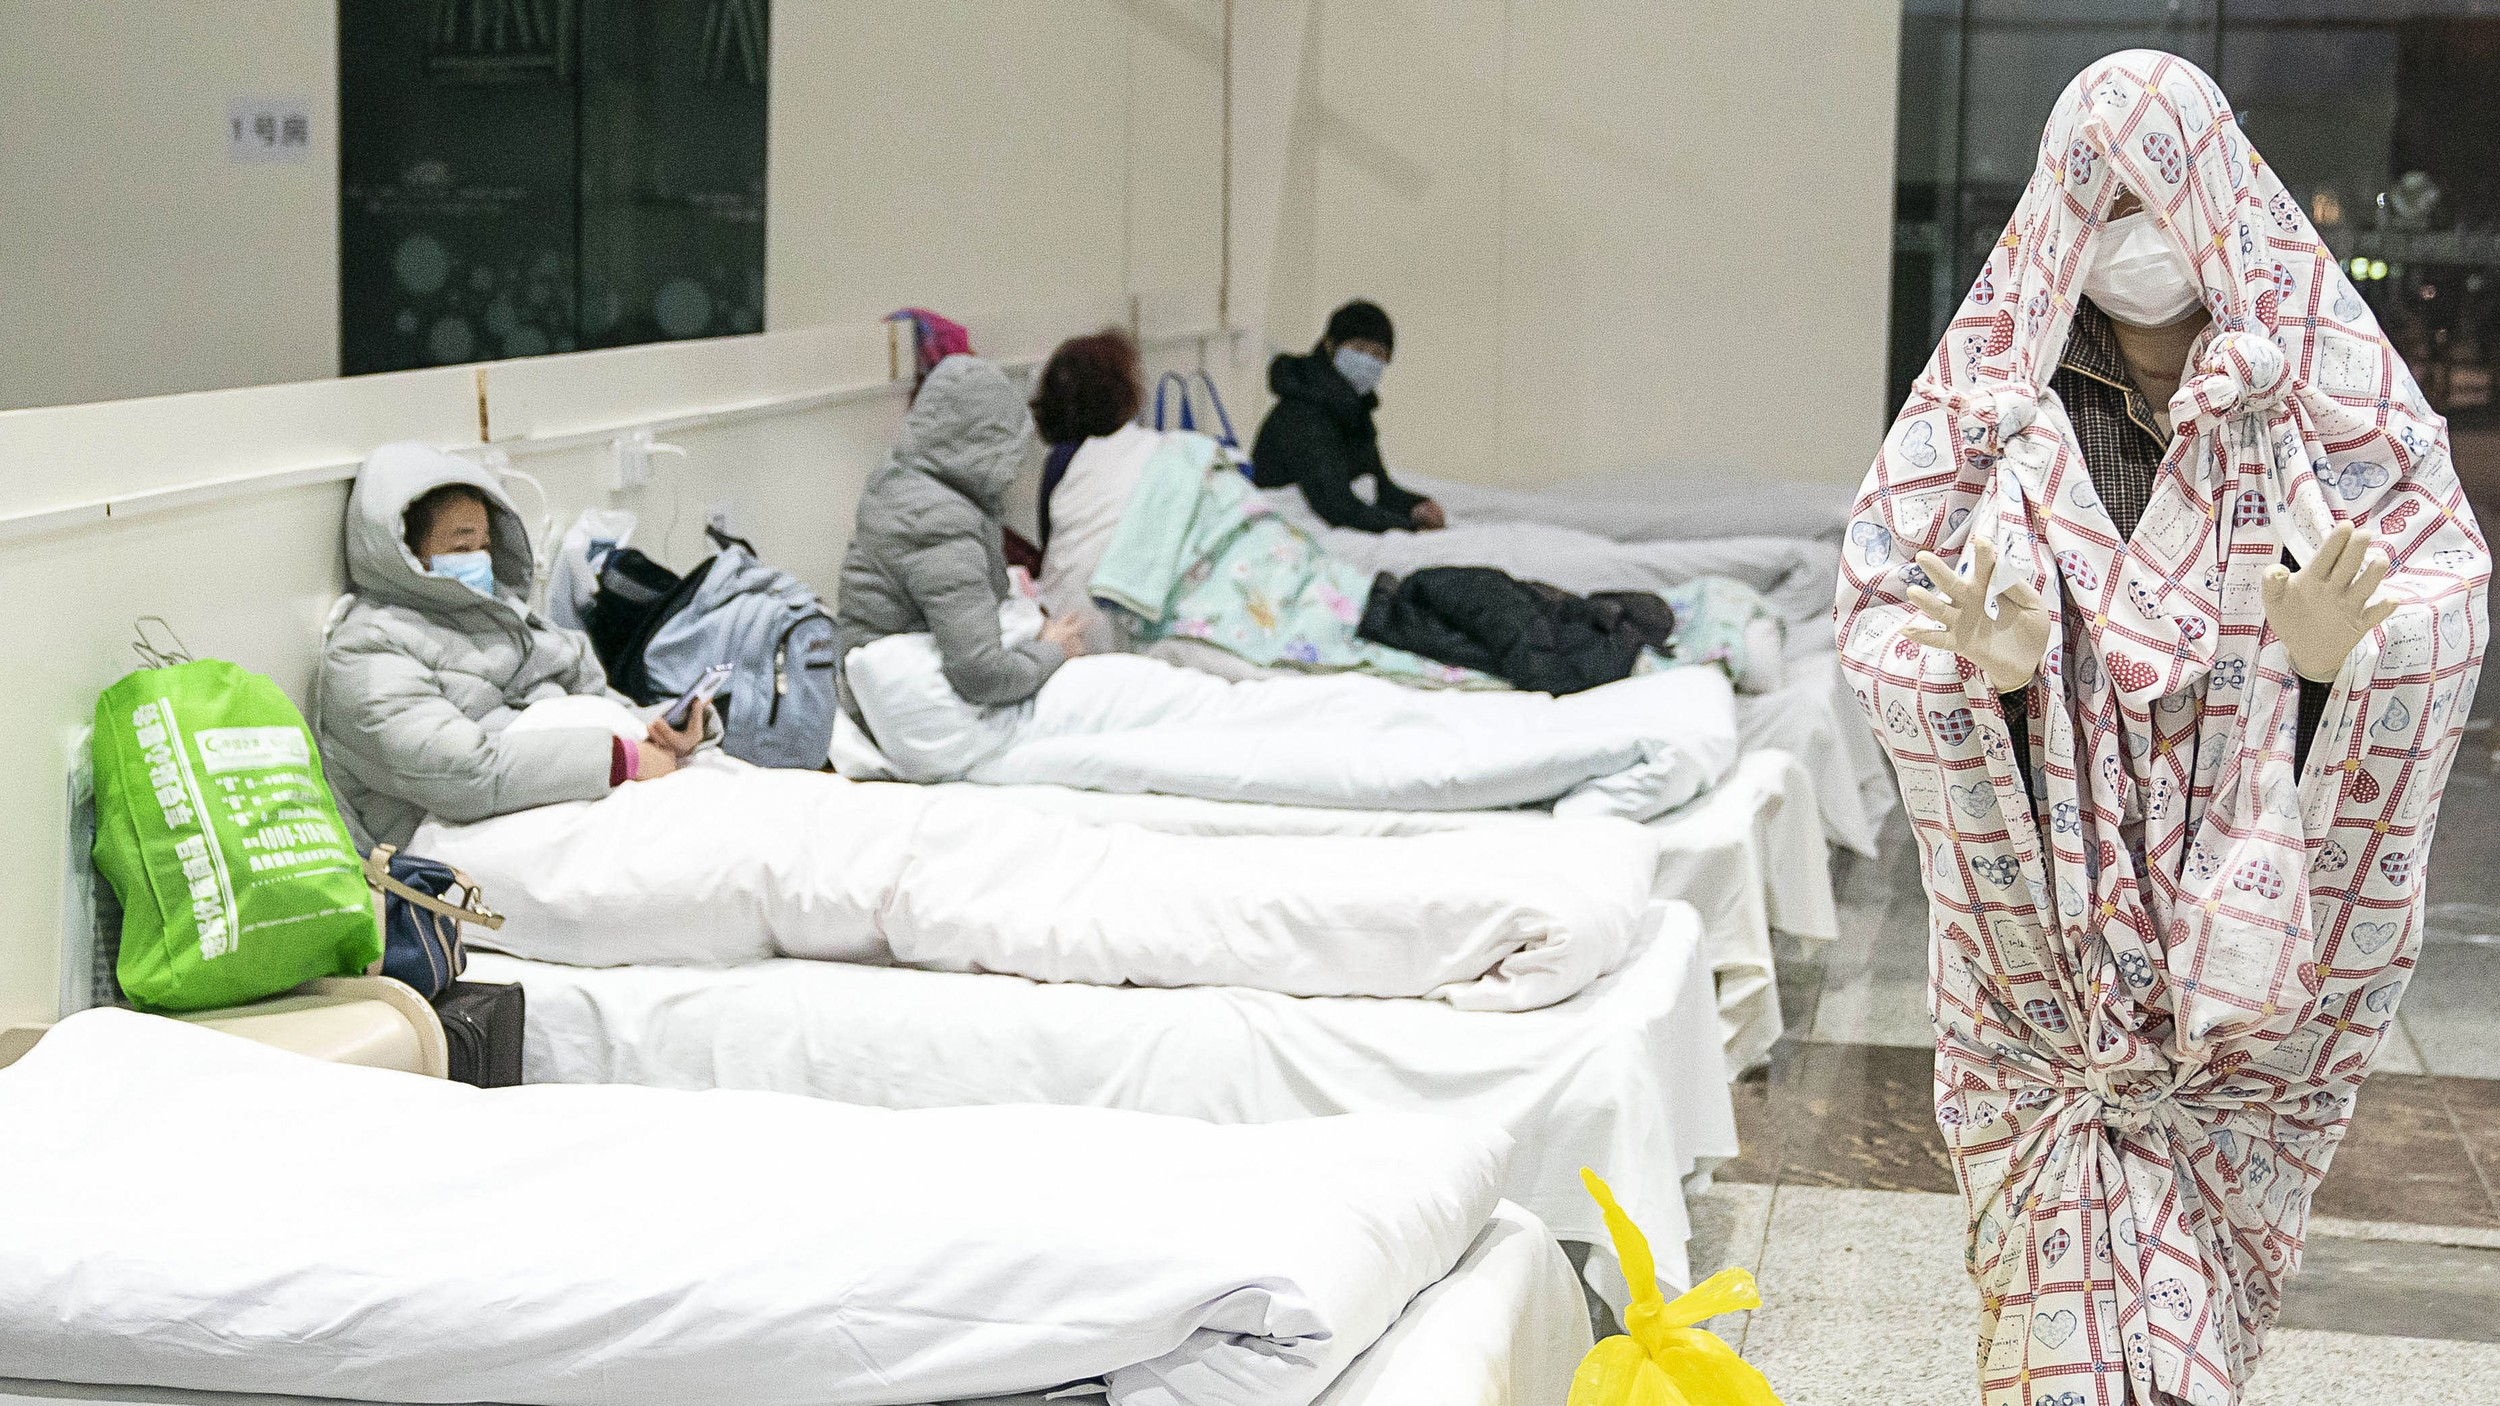 A patient (R) covered with a bed sheet gestures at an exhibition center converted into a hospital in Wuhan, in China's central Hubei province, Feb. 5, 2020. Photo: AFP